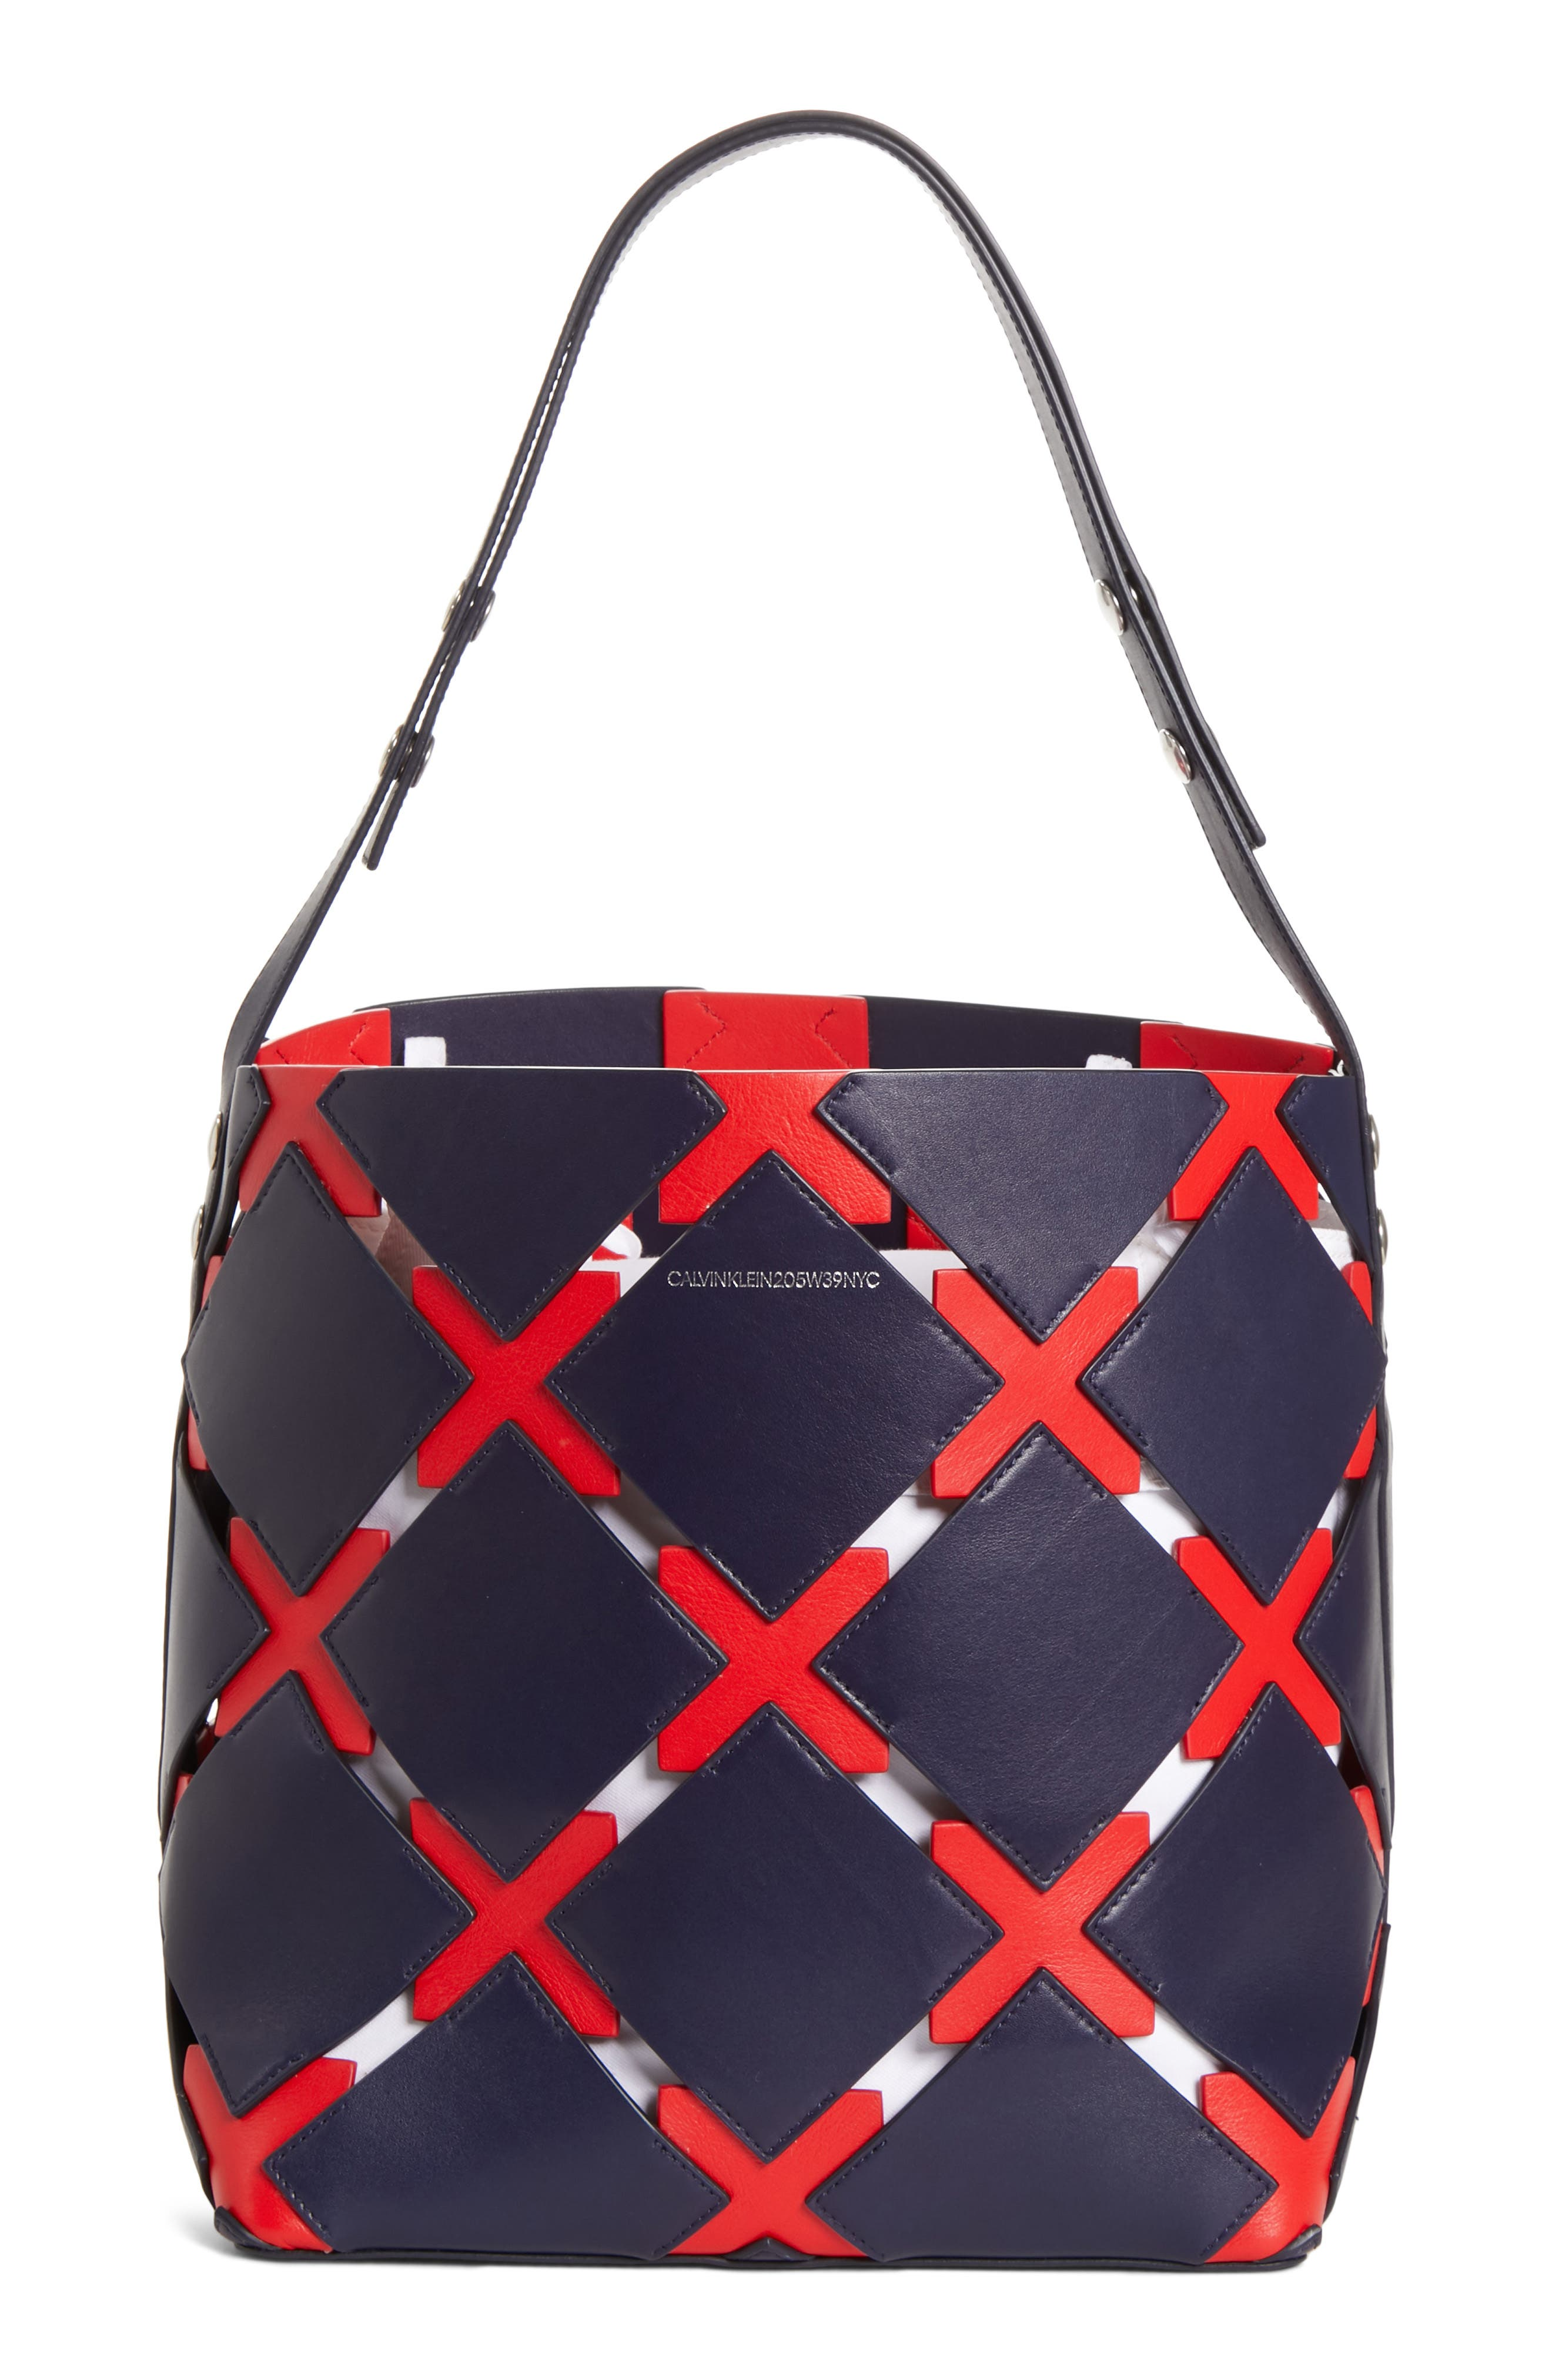 CALVIN KLEIN 205W39NYC Patchwork Quilt Leather Bucket Bag, Main, color, 424